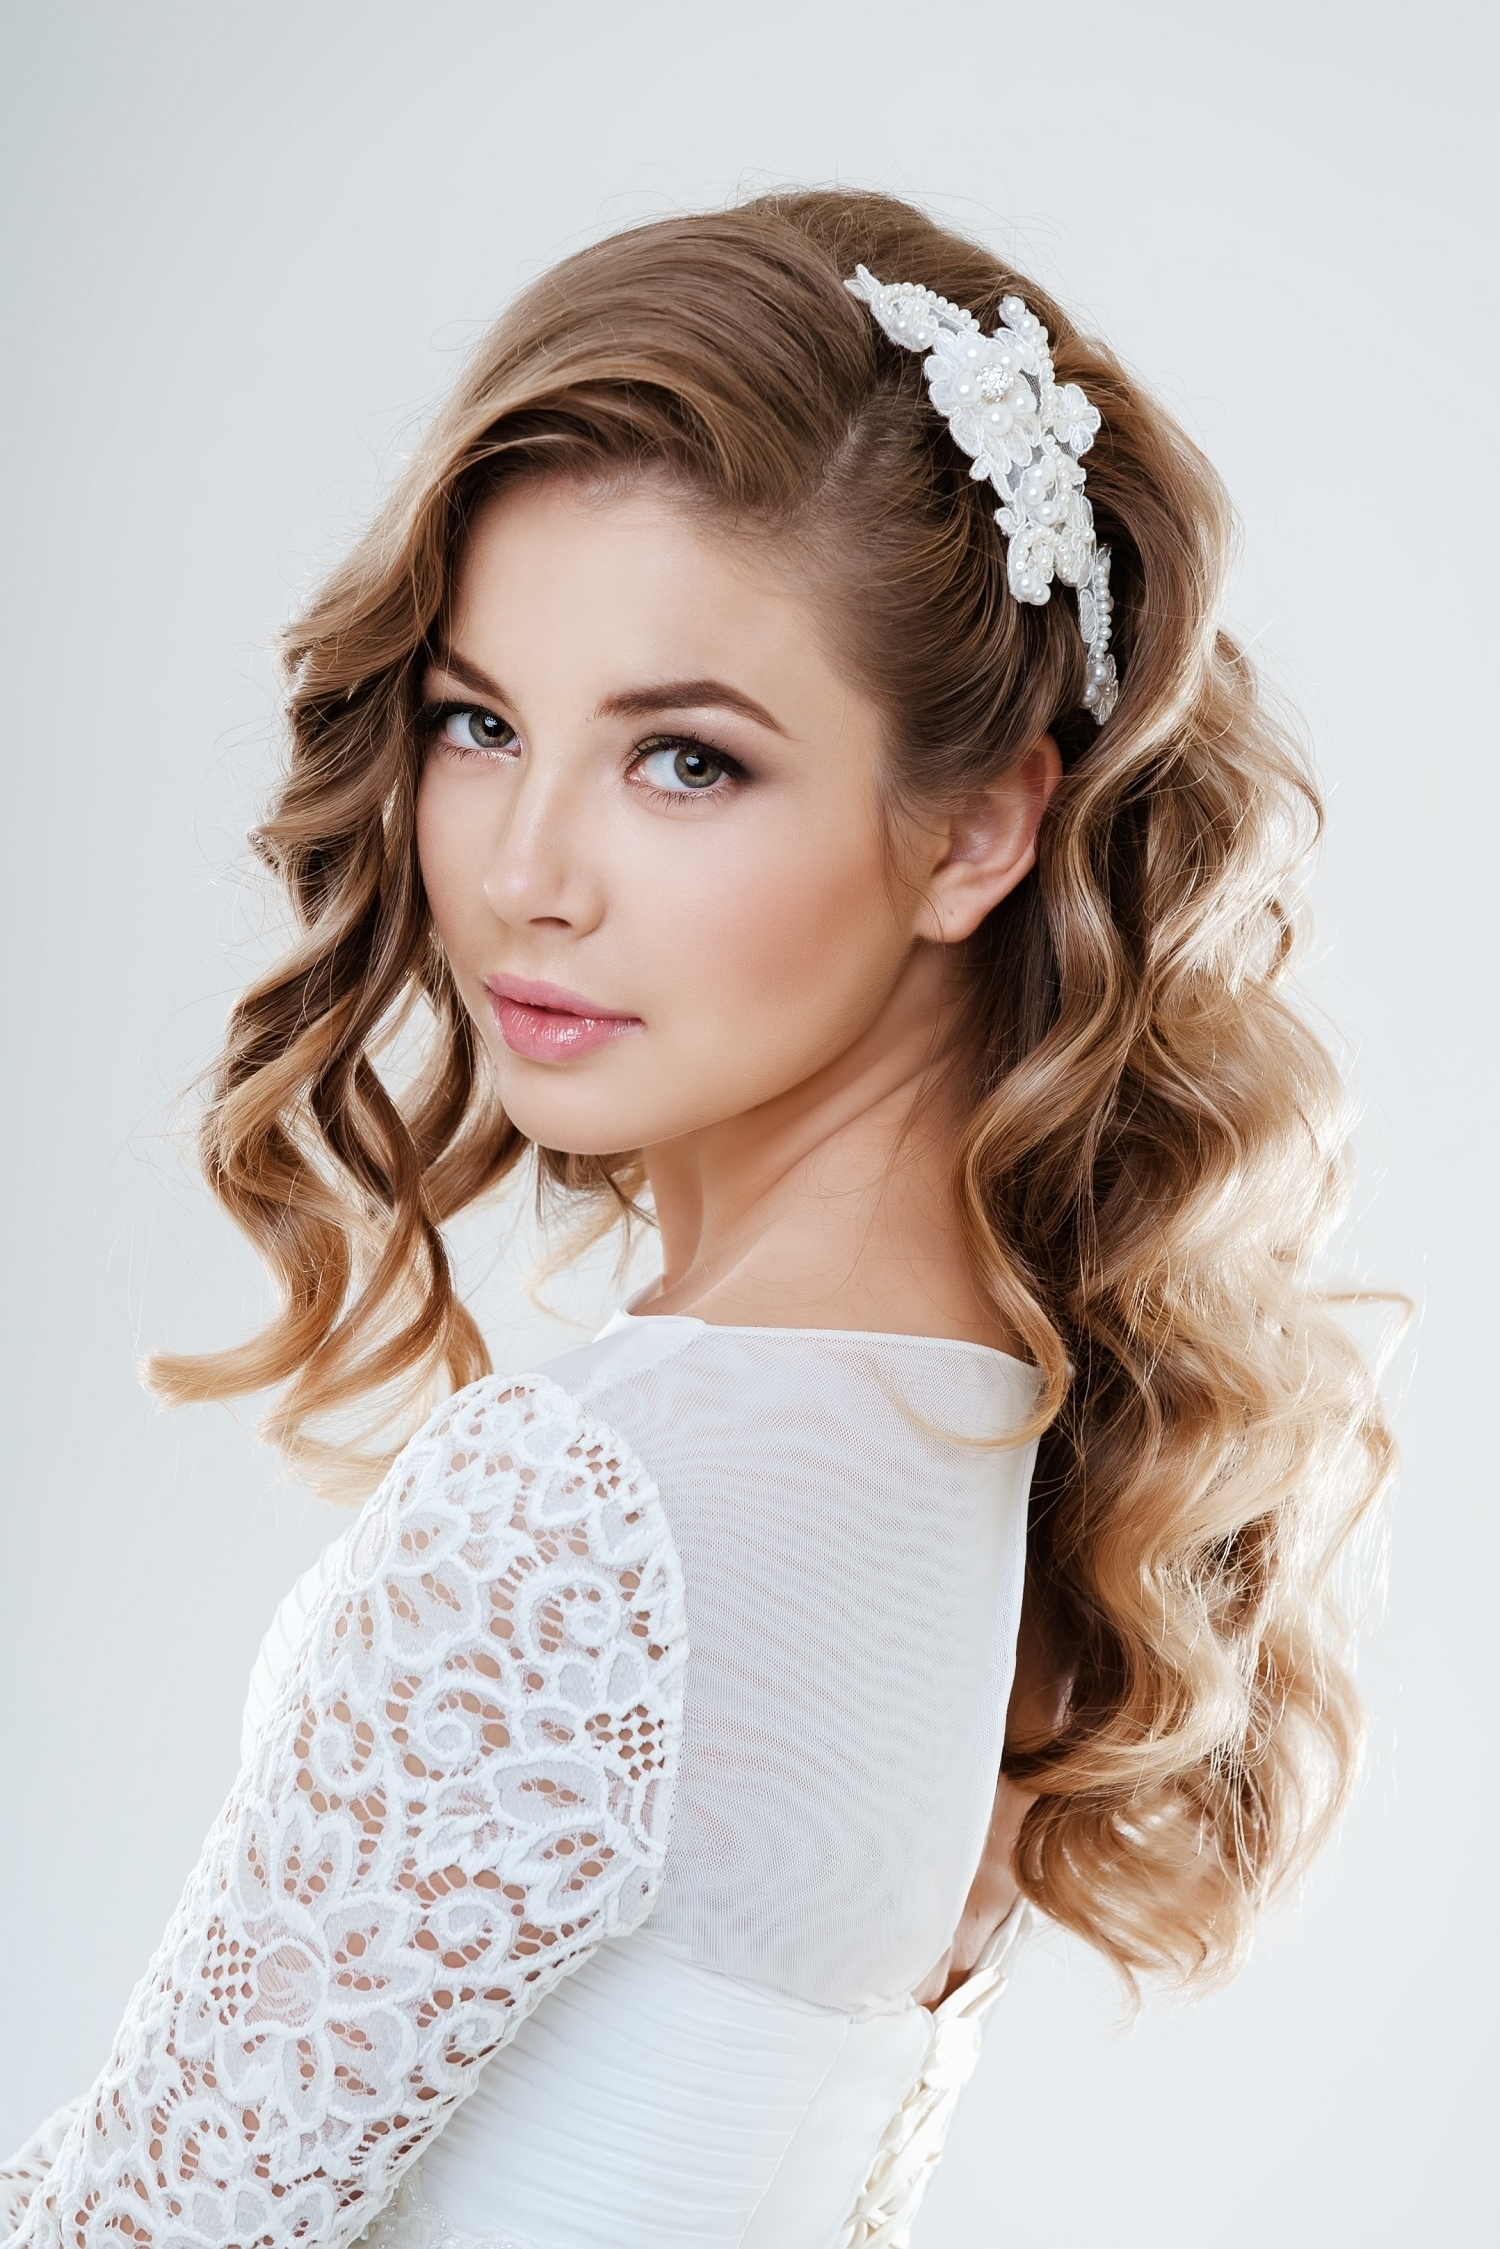 Choosing The Perfect Hairstyle To Match Your Wedding Dress – Al With Favorite Wedding Hairstyles To Match Your Dress (View 5 of 15)